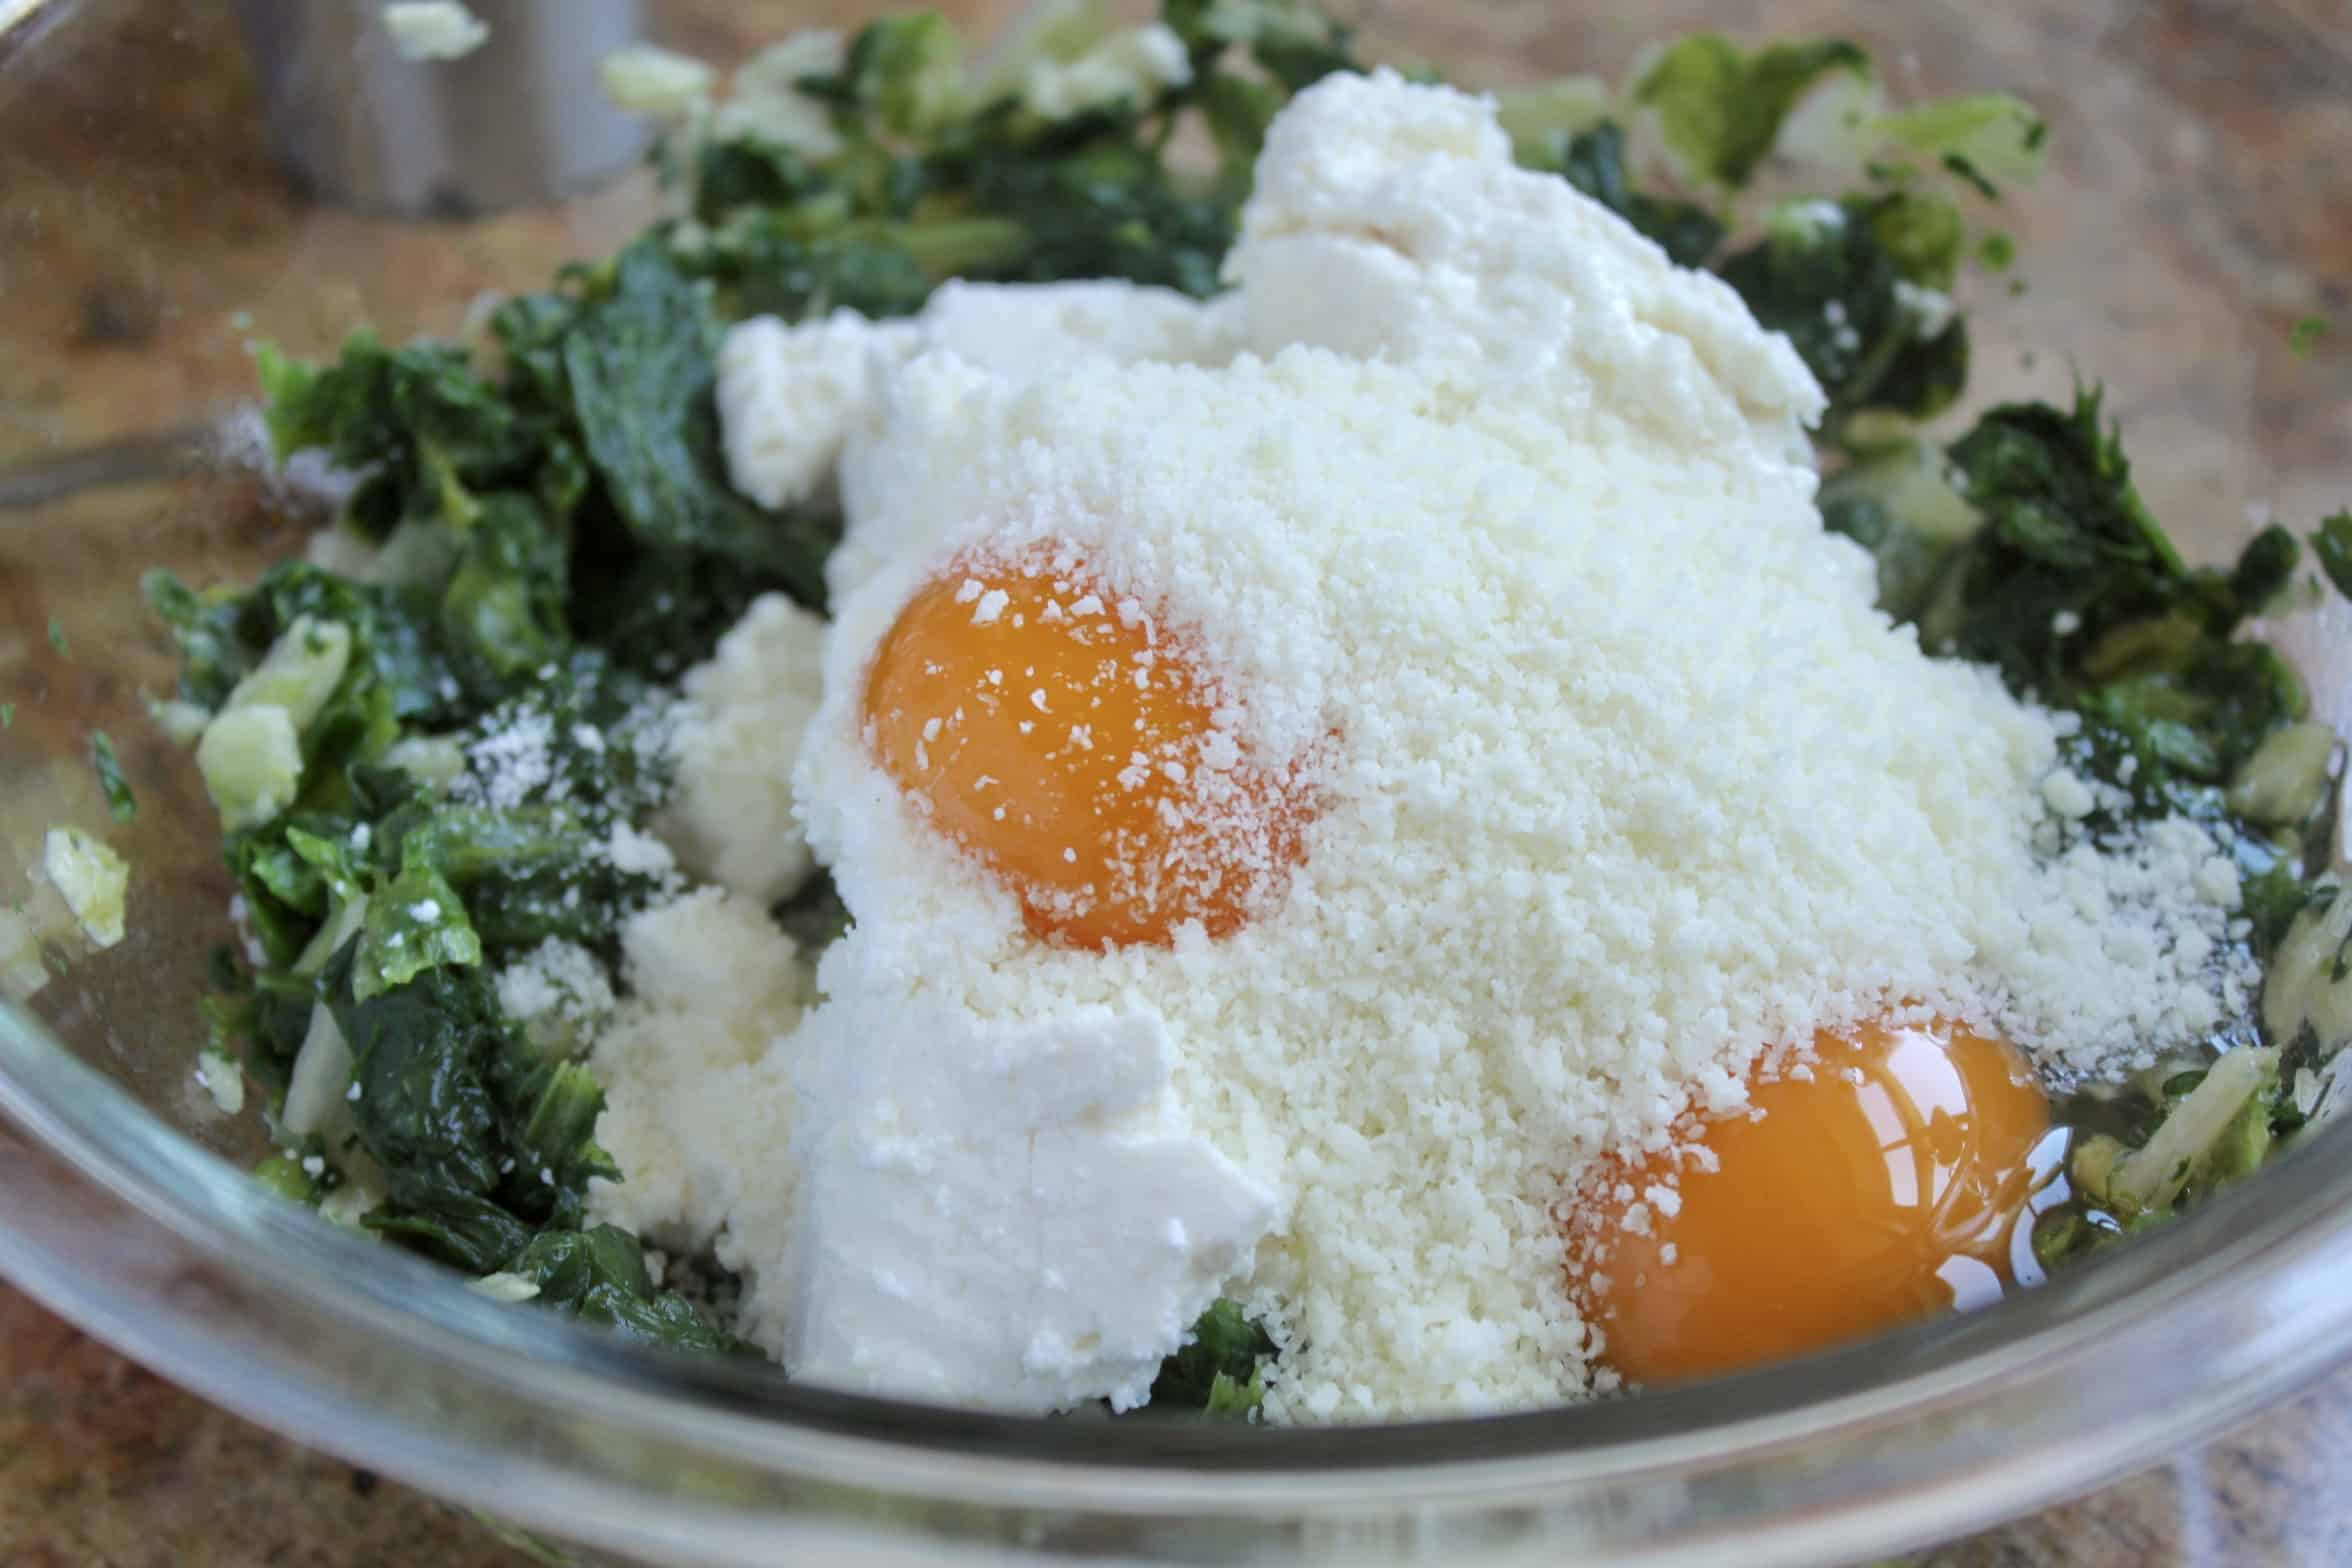 making filling with greens and cheese